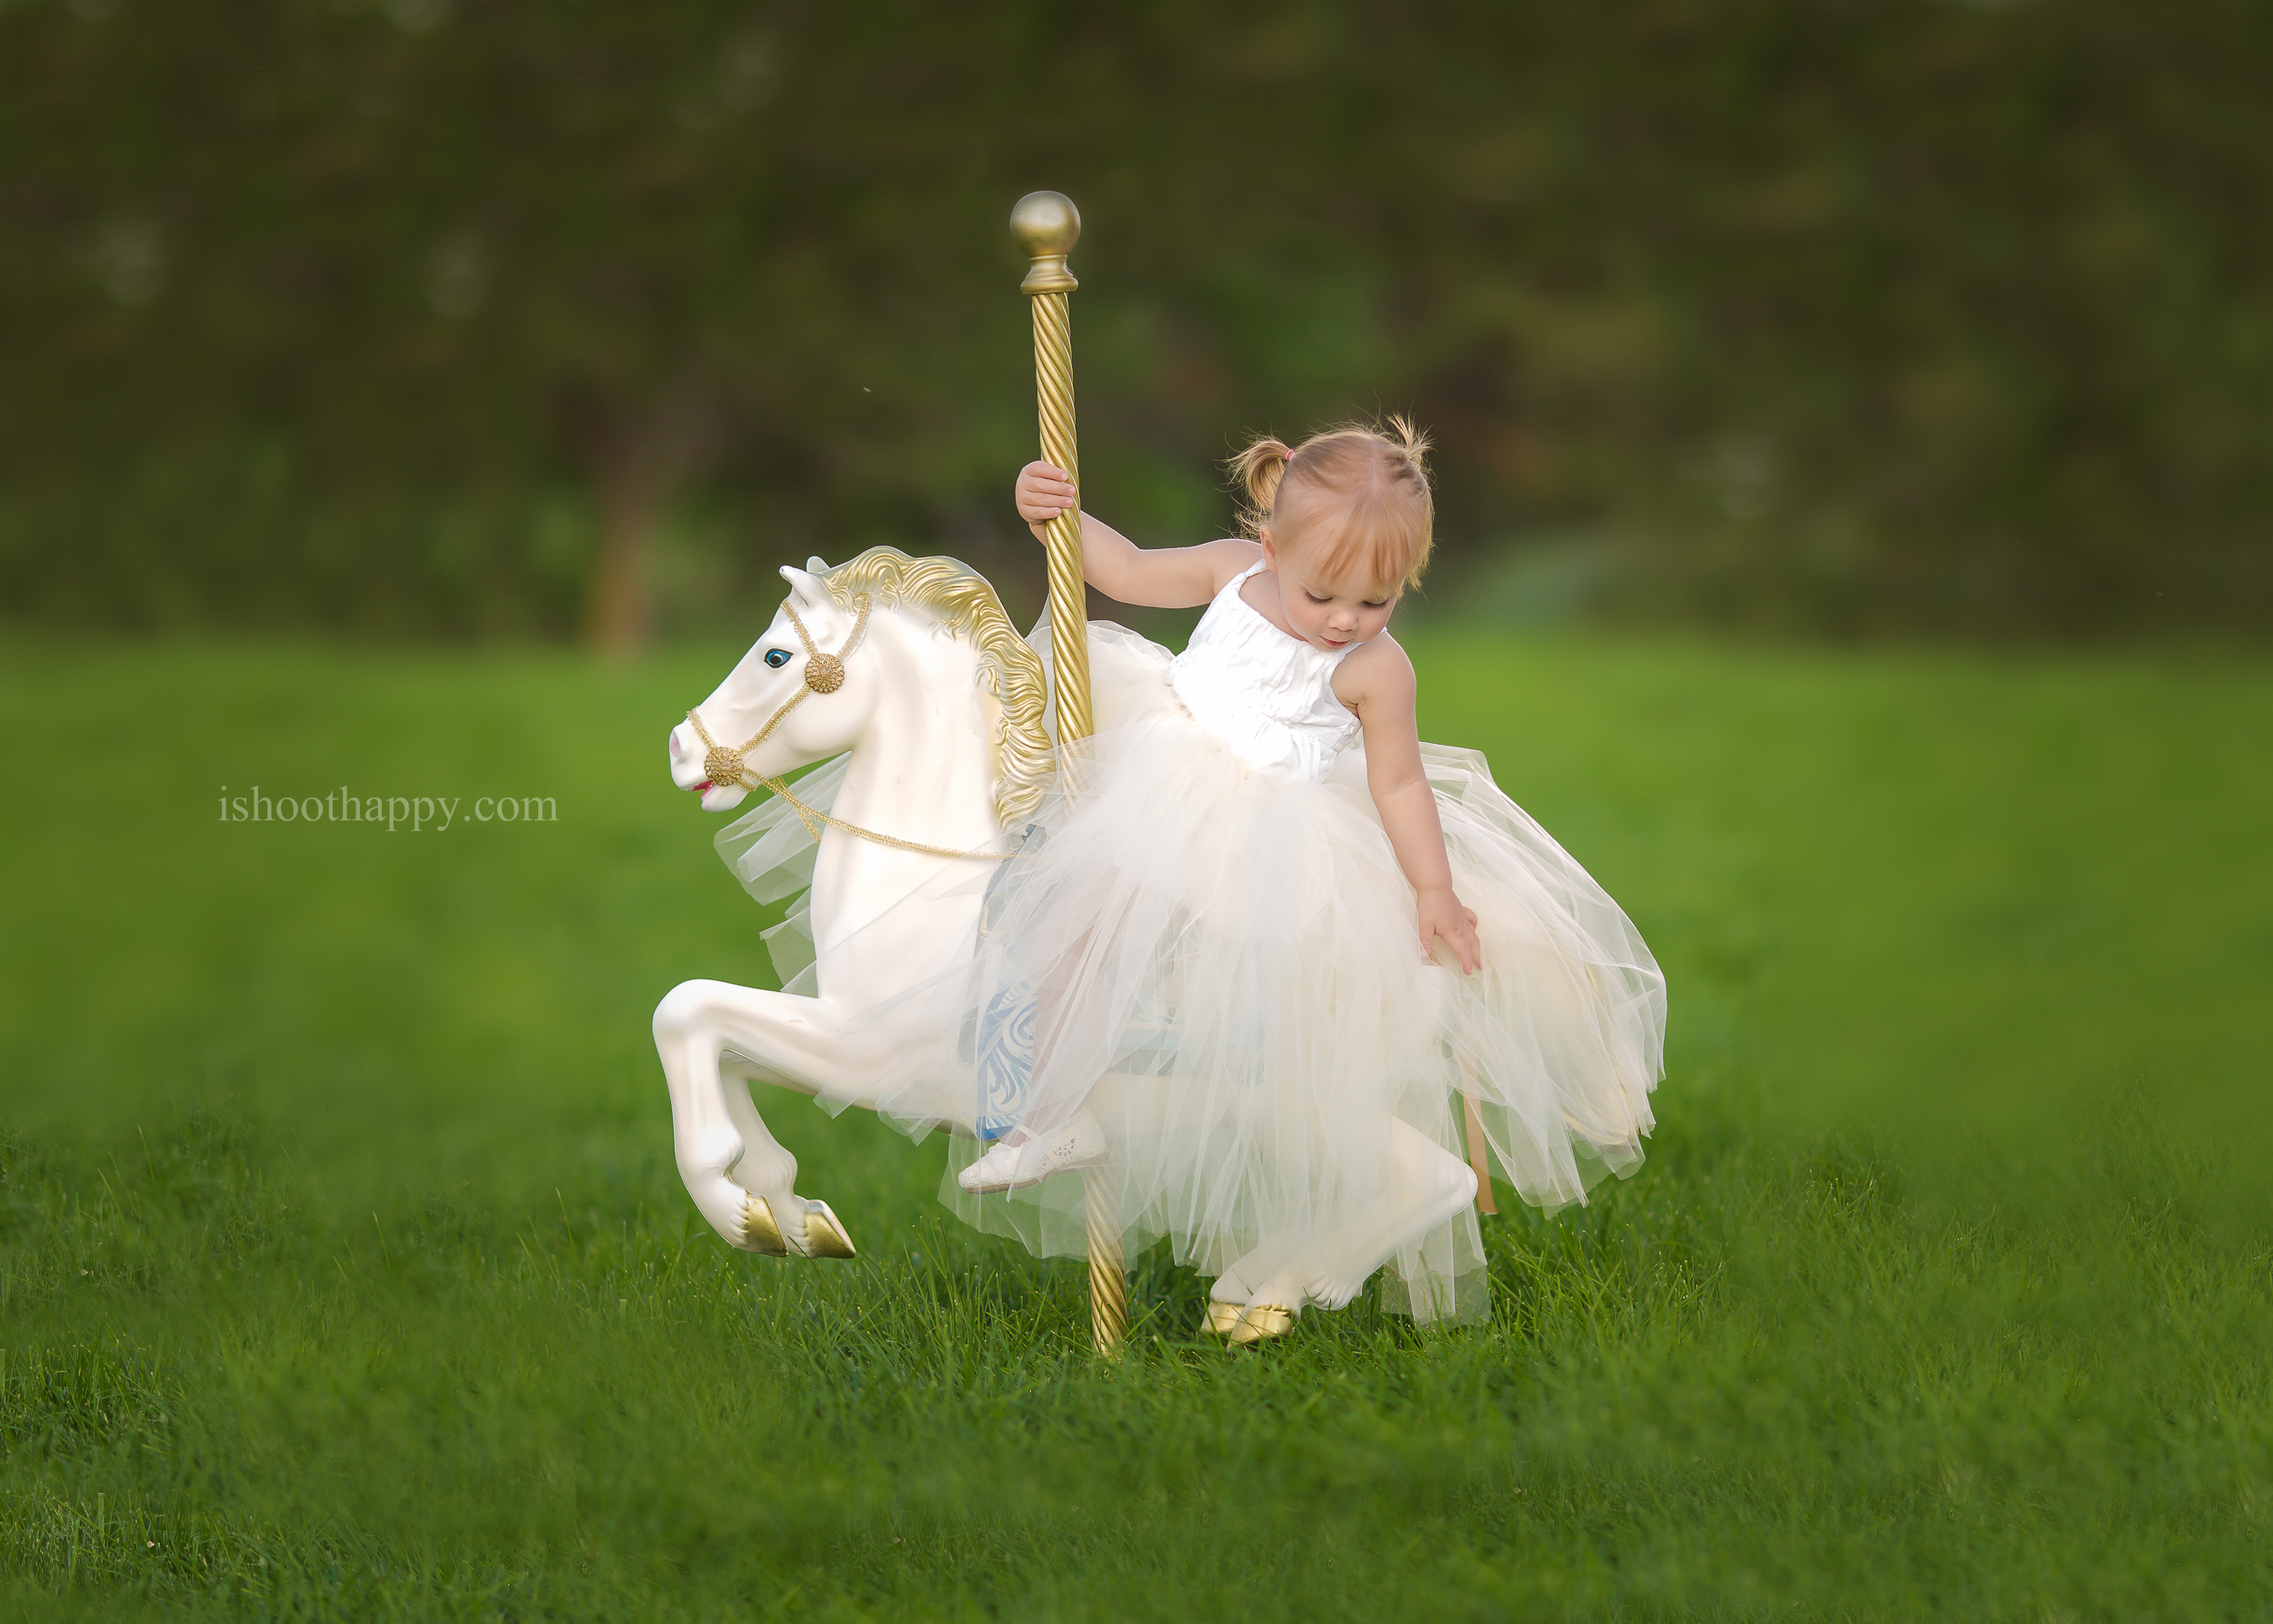 Denver Children Photography, Denver Child Photography, Children Photo, Baby Photographer Denver, Child Photo Session, Denver Newborn Photography, Newborn Baby Photo Session, Denver Newborn photographer, White Tutu, Carousel Horse